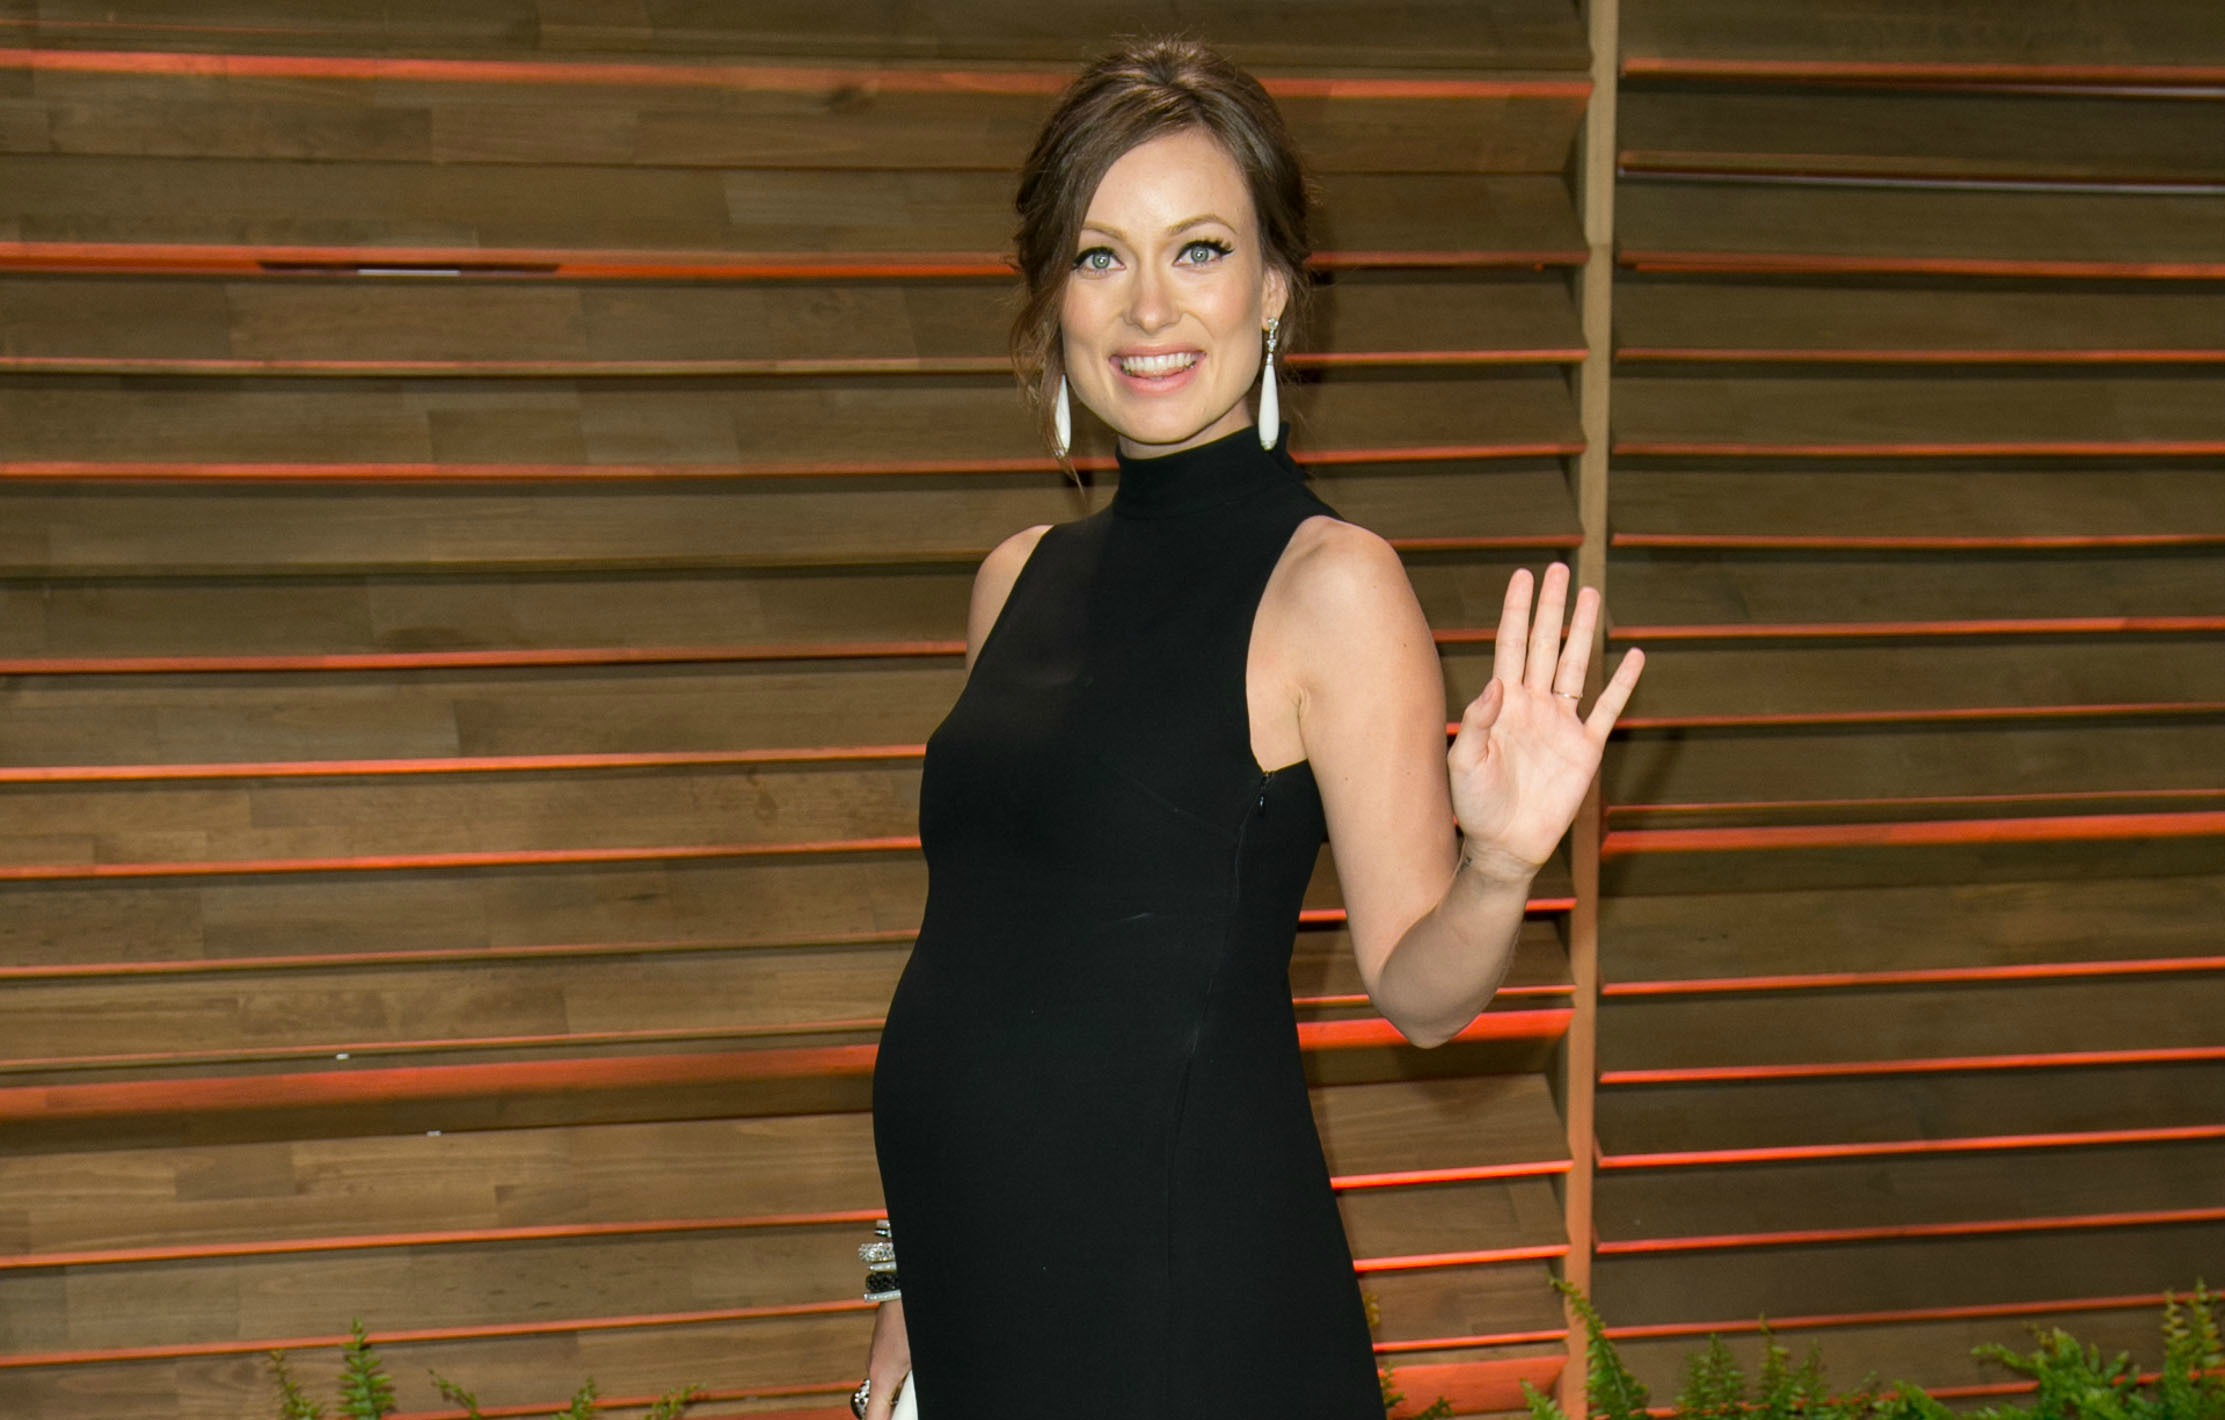 Olivia Wilde gushes about the perks of pregnancy to Lucky magazine